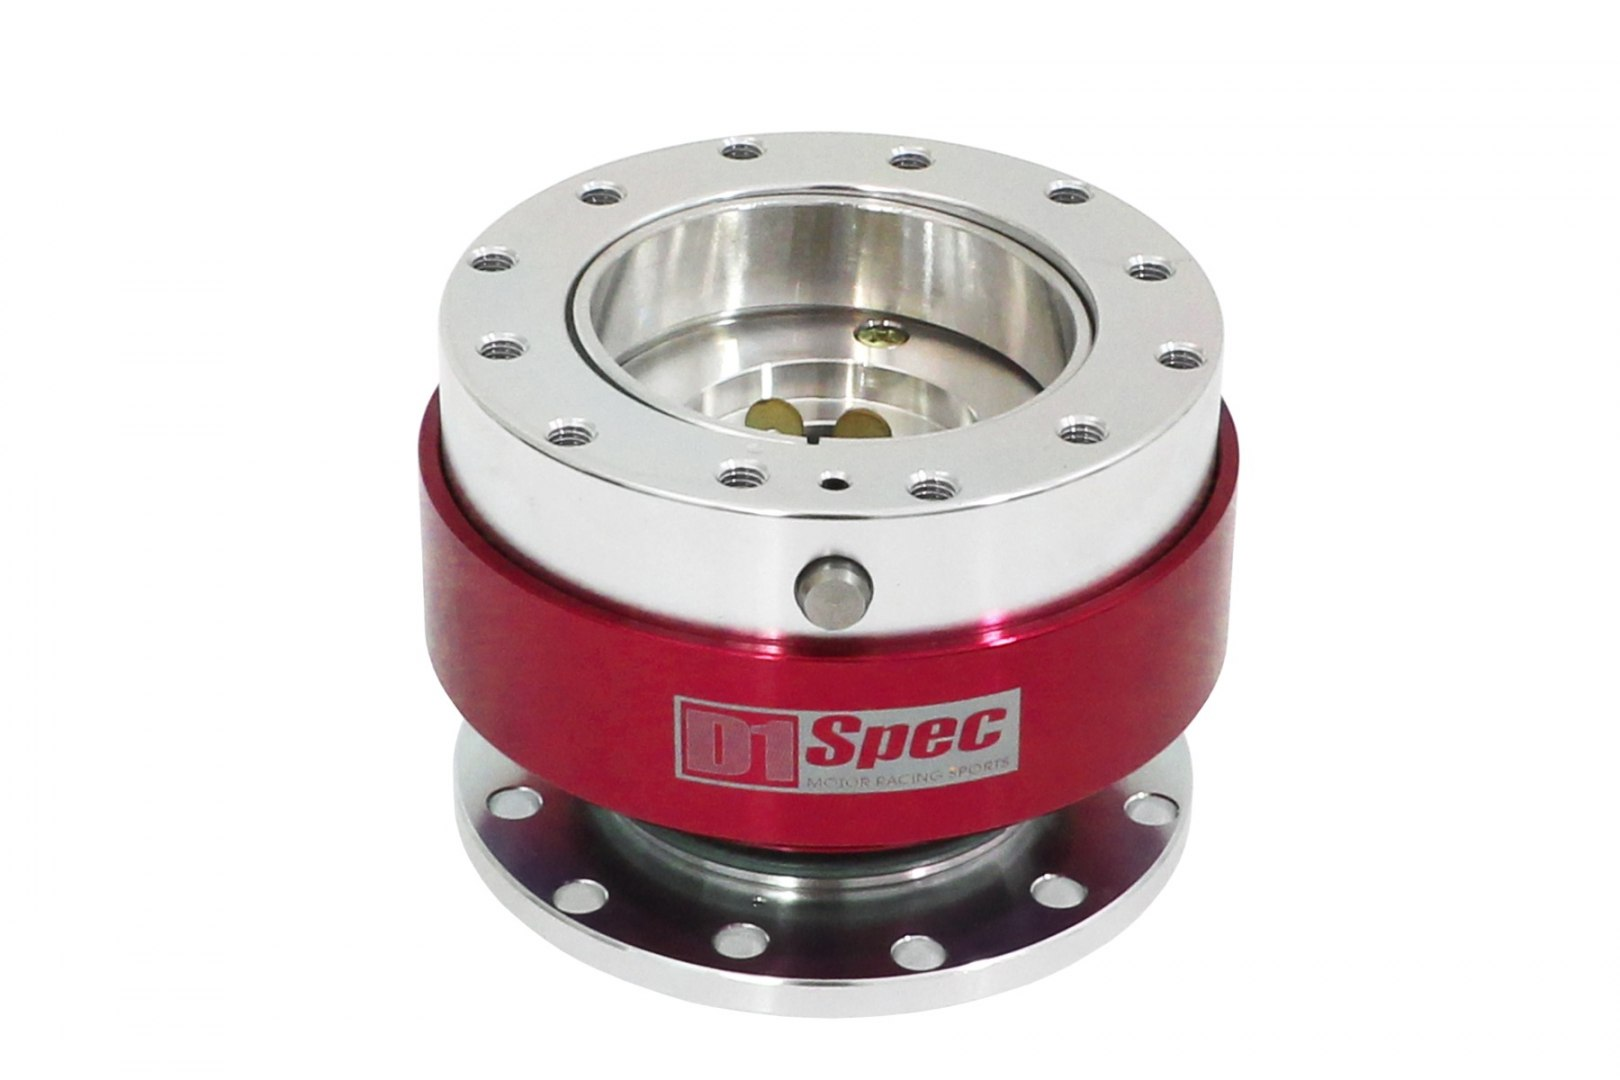 Naba Quick release D1SPEC Red - GRUBYGARAGE - Sklep Tuningowy